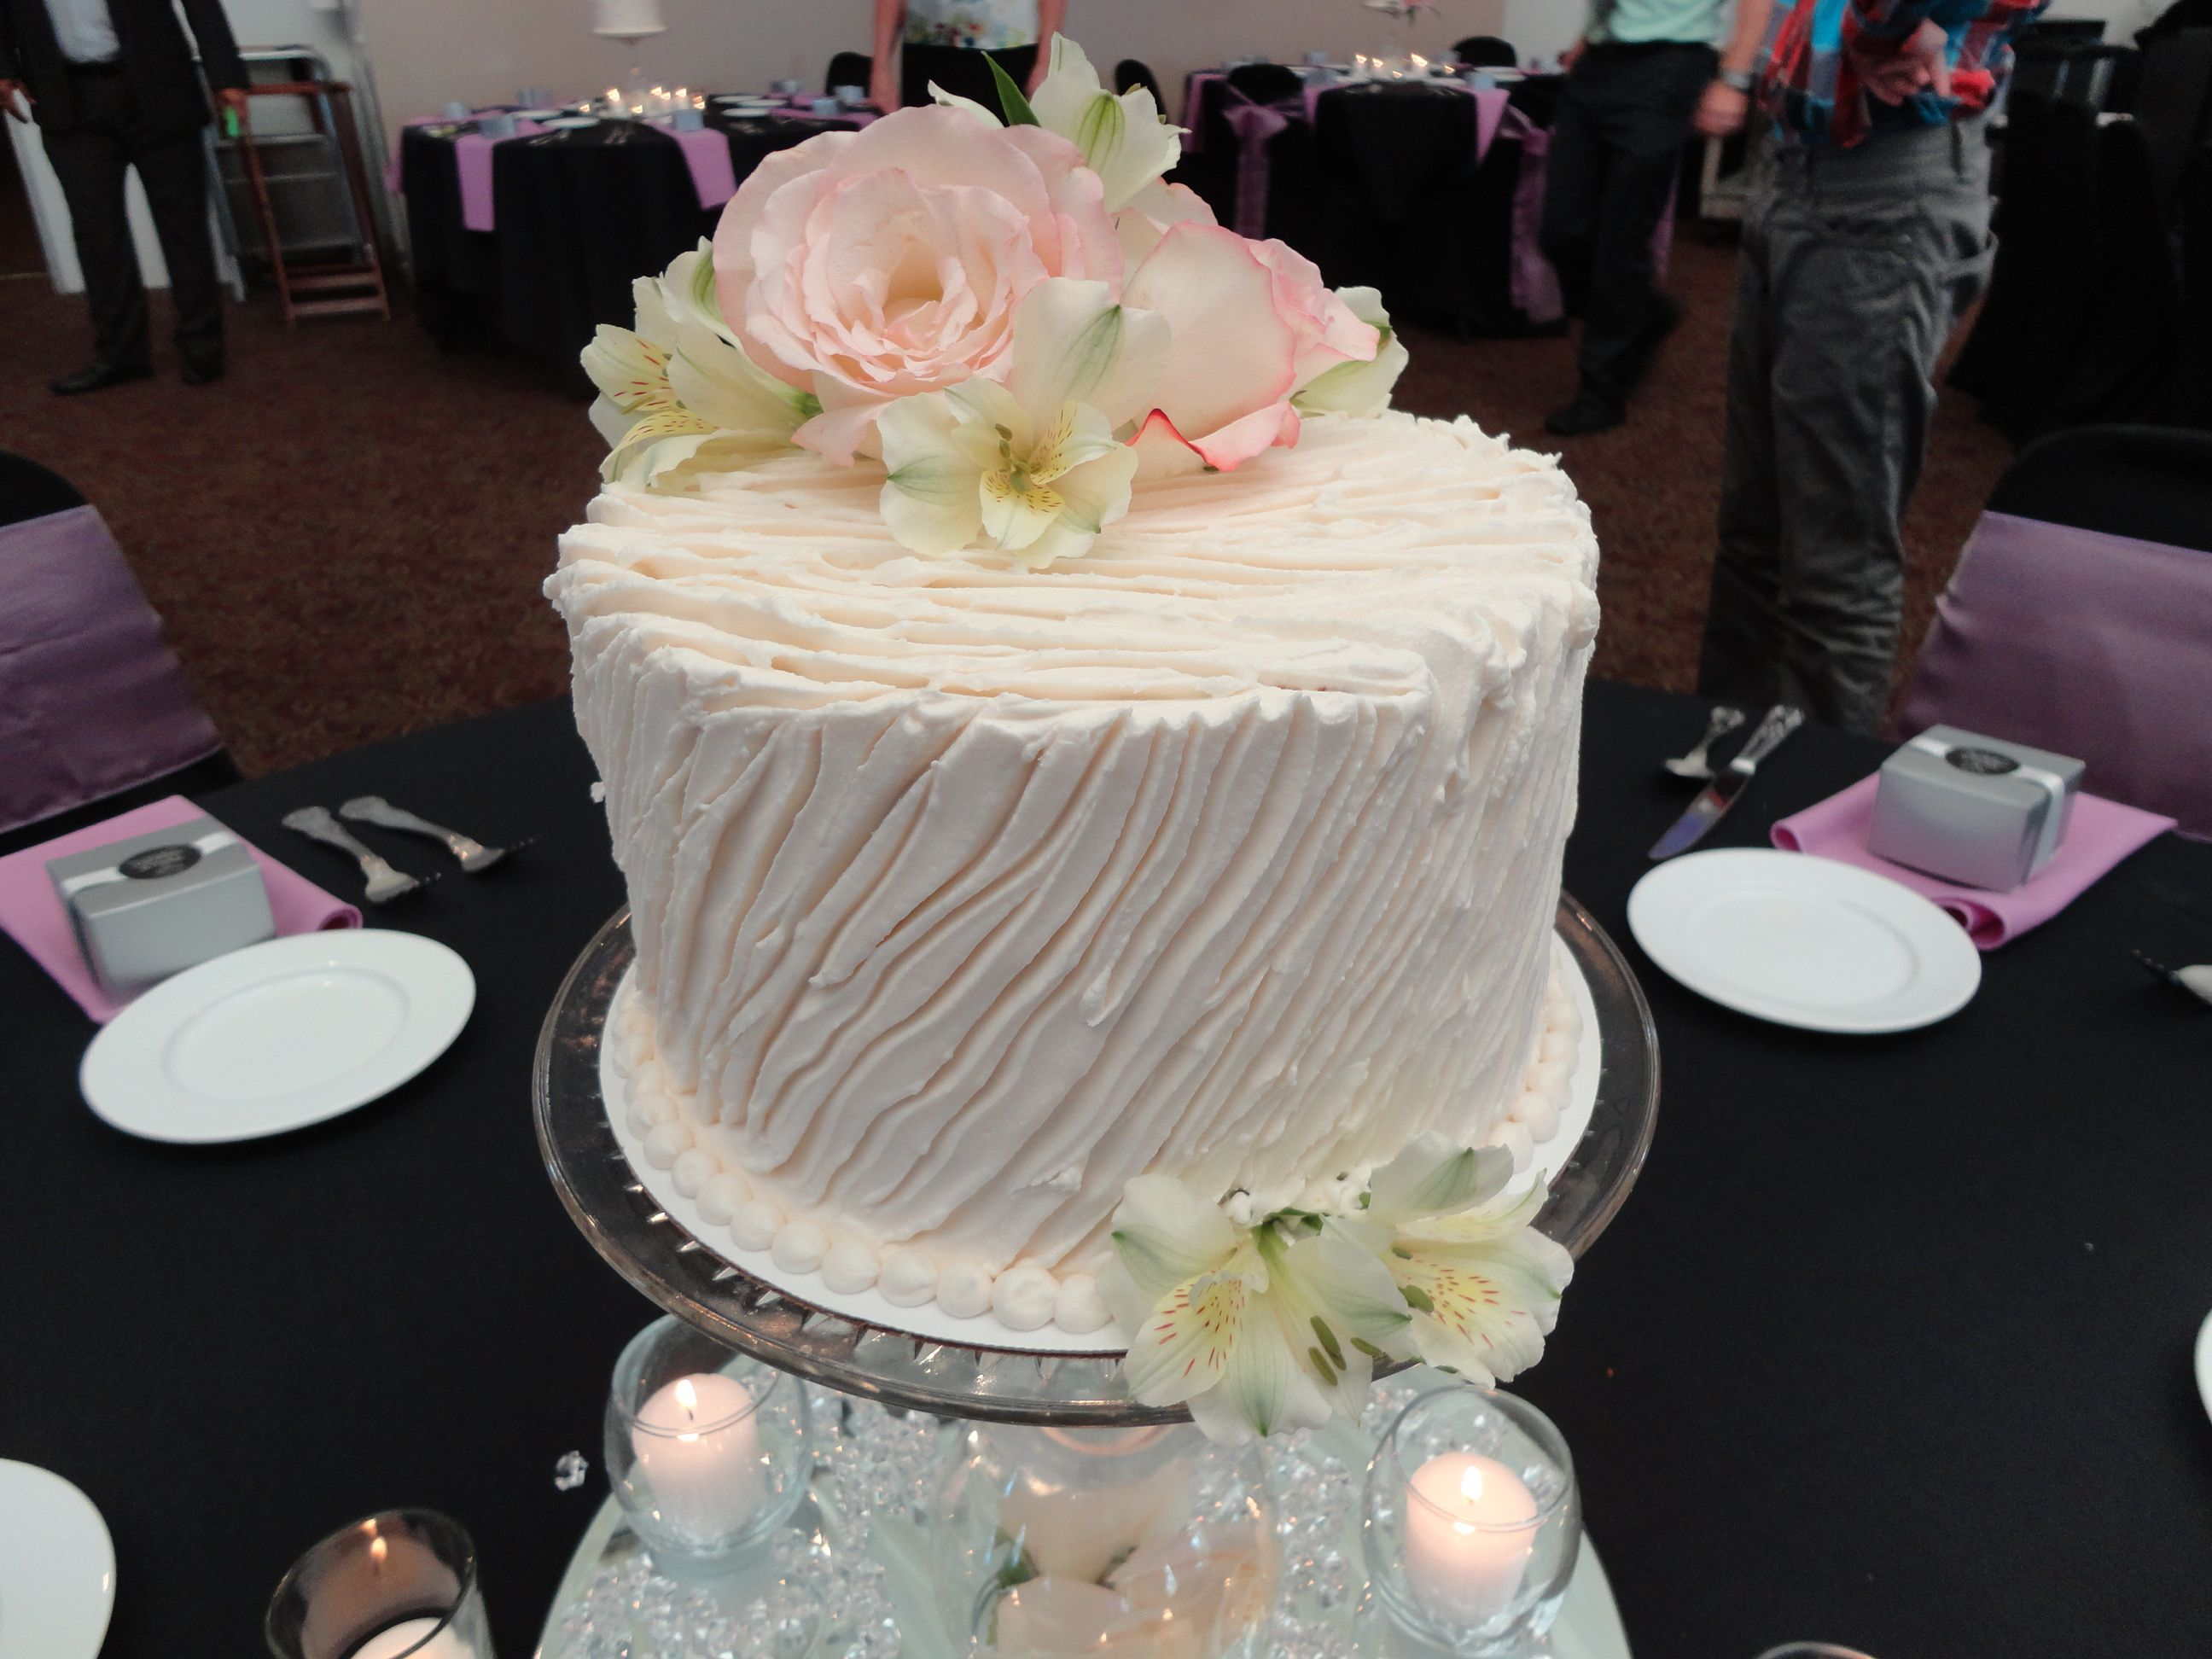 Pleasing Centerpiece Cakes Wedding Cake Centerpieces In 2019 Home Interior And Landscaping Ologienasavecom